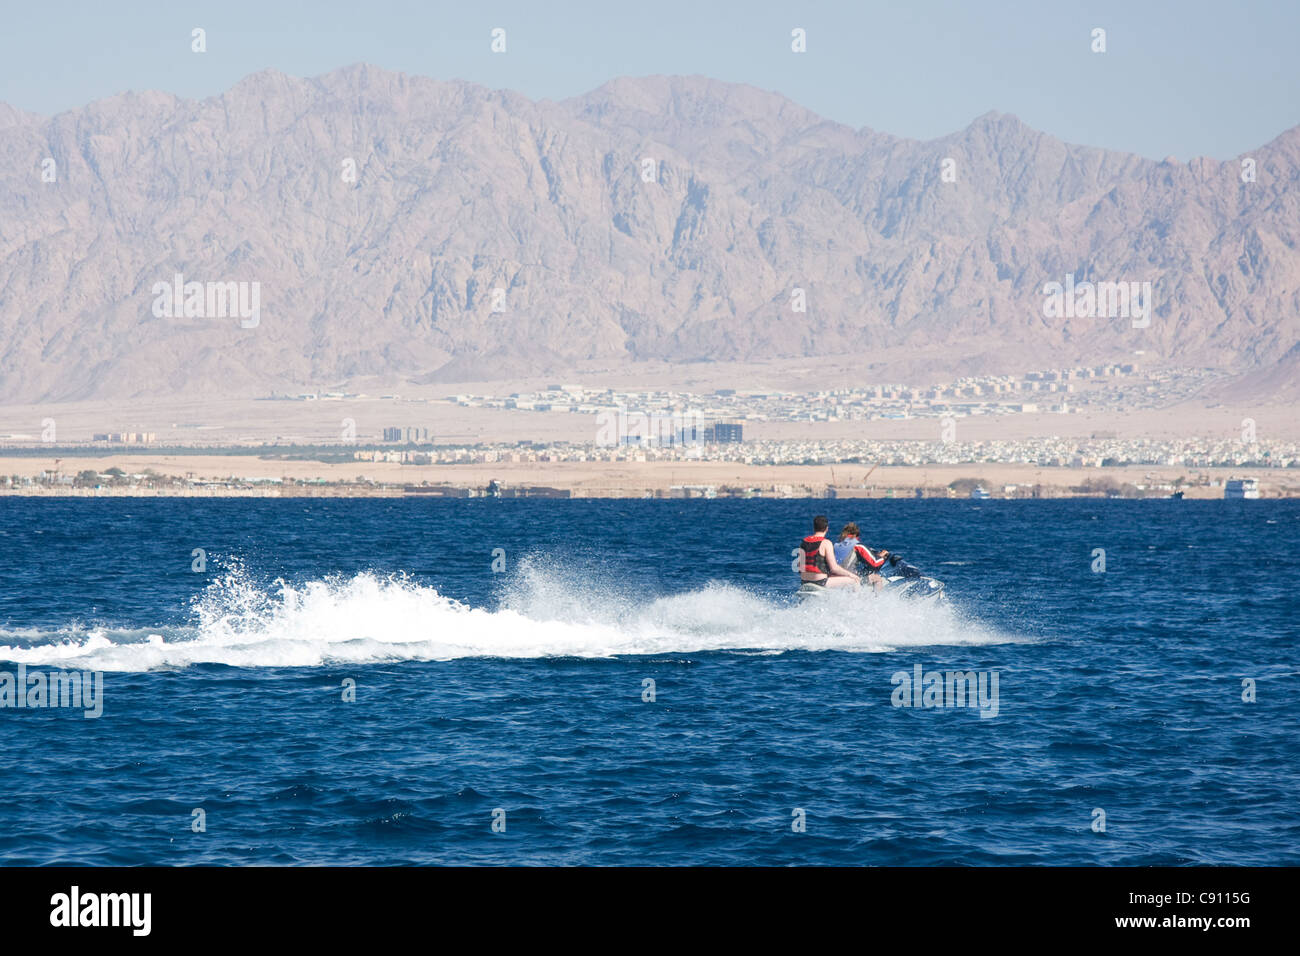 Watersports in Eilat Israel - Stock Image